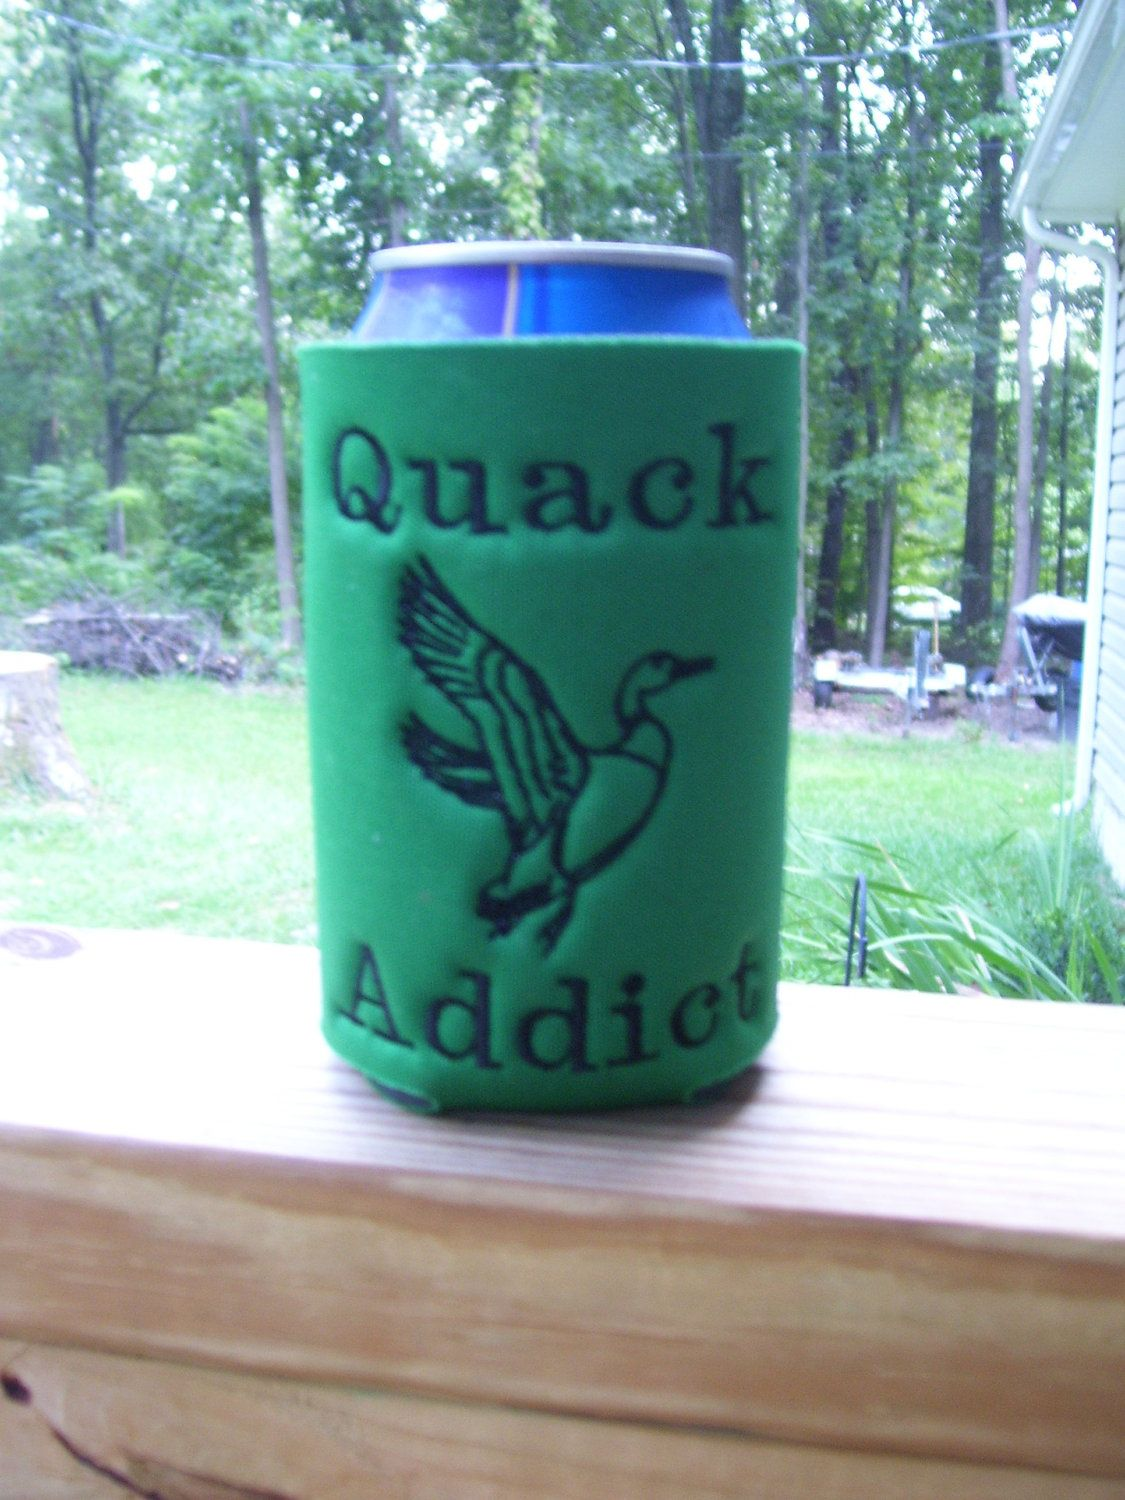 Funny can koozie perfect for the duck hunter with a sense